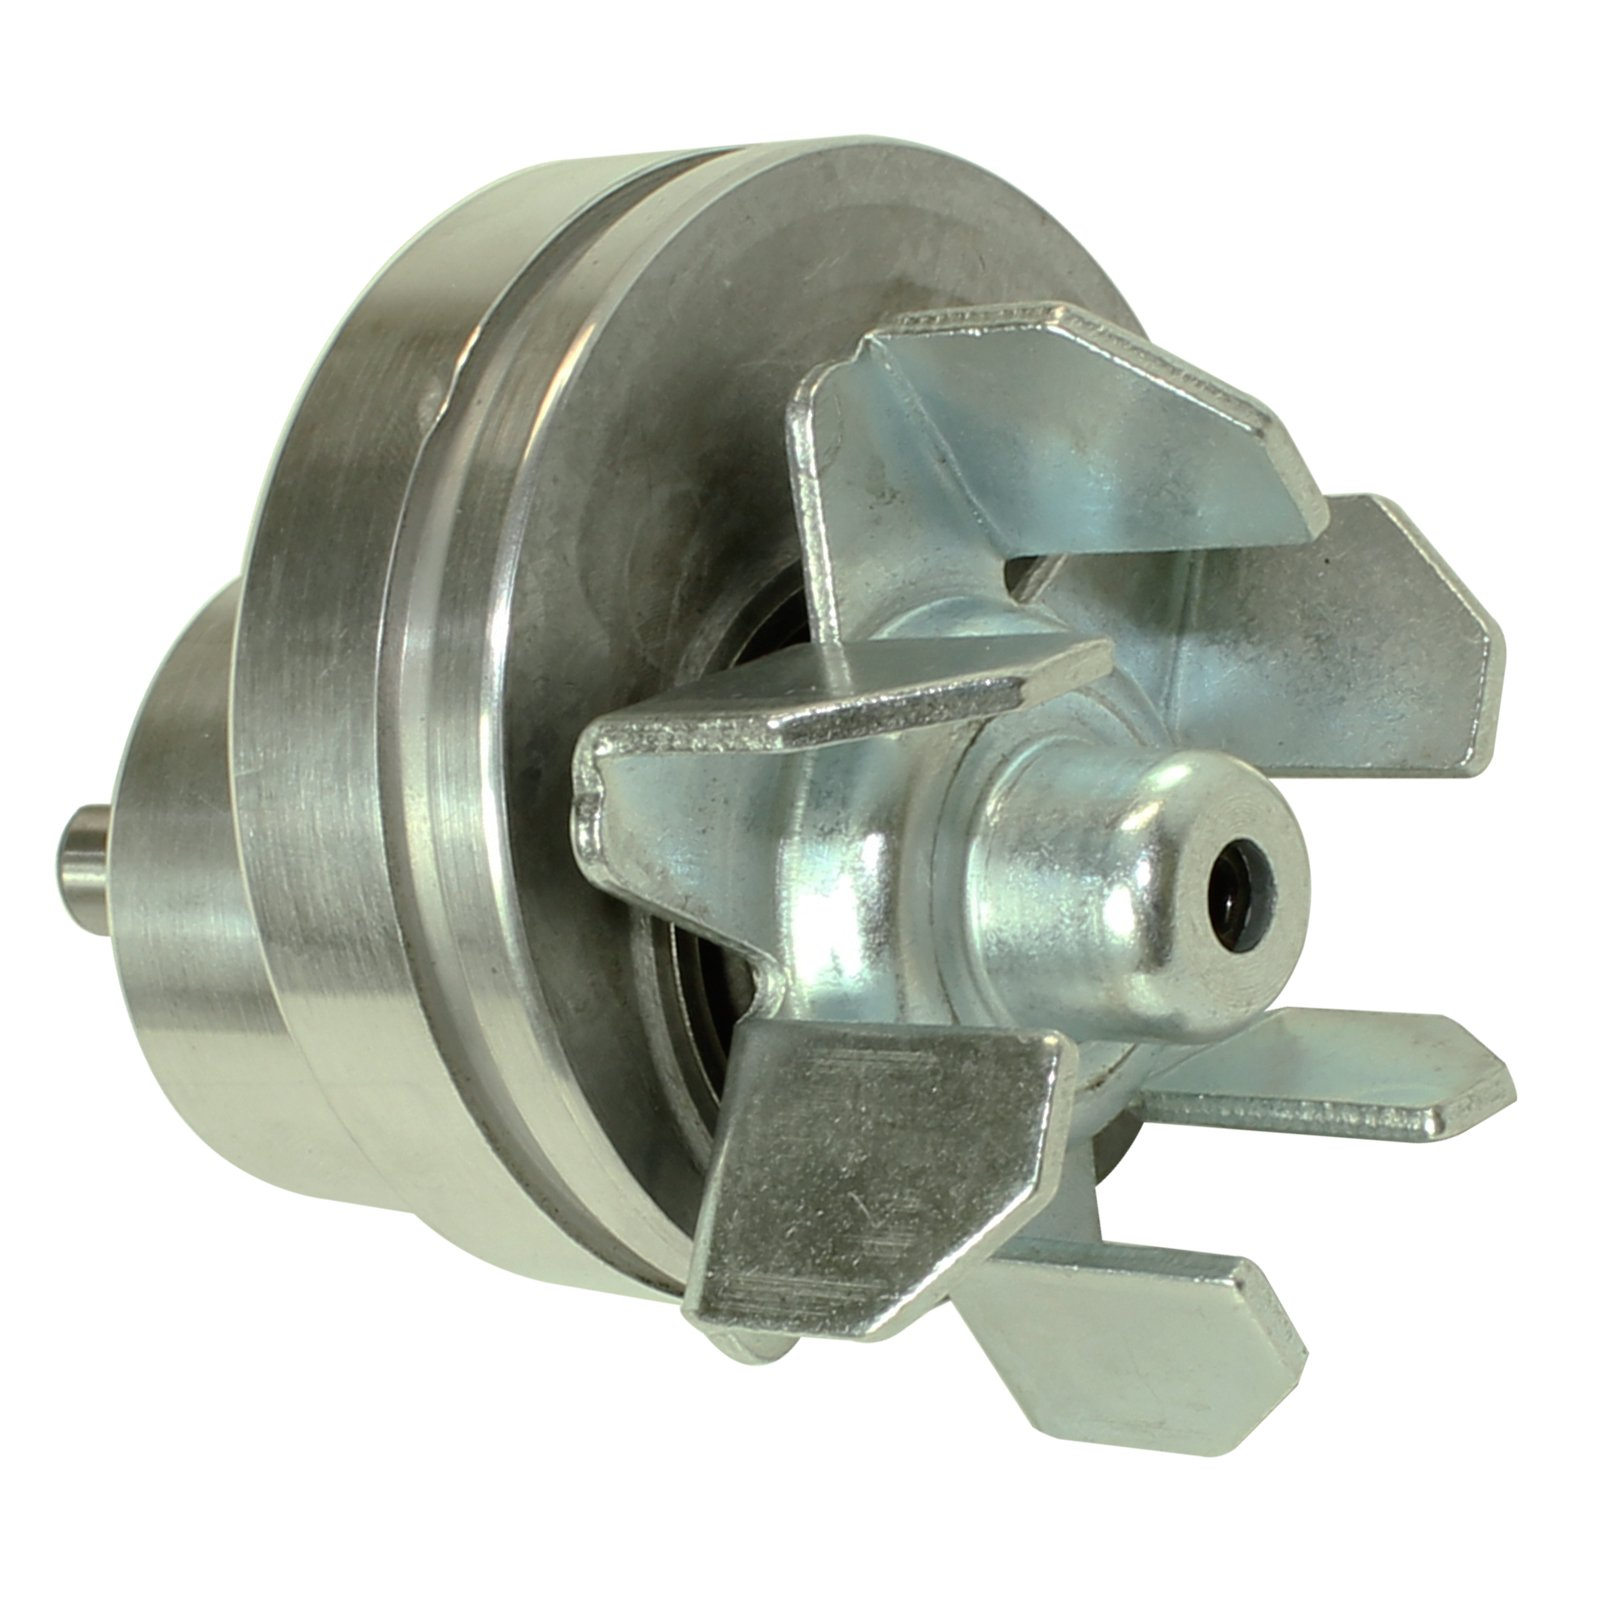 CALTRIC WATER PUMP Fits HONDA GL1000 GOLDWING 1000 1977 1978 1979 by Caltric (Image #1)